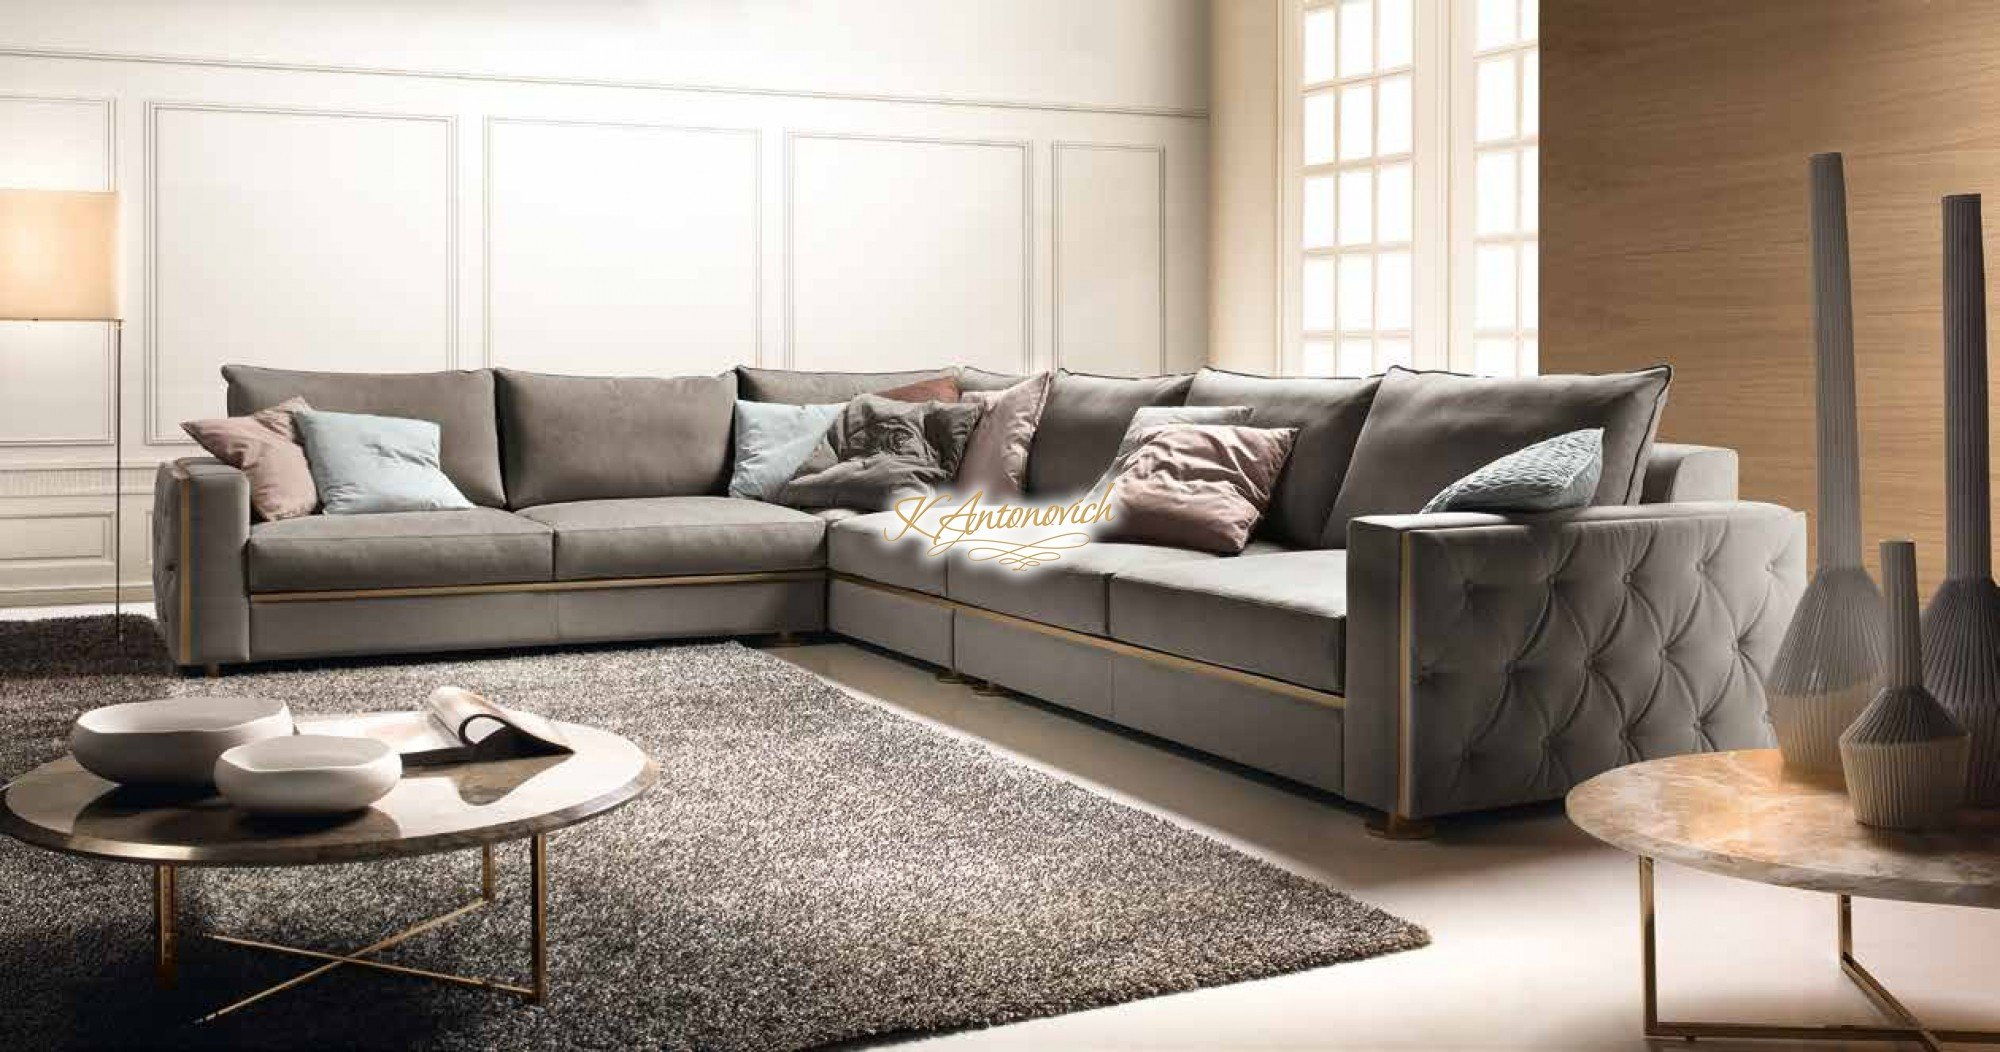 The possibilities are endless when you use white as the base of your color palette for your living room furniture. Modern italian living room furniture - luxury interior ...